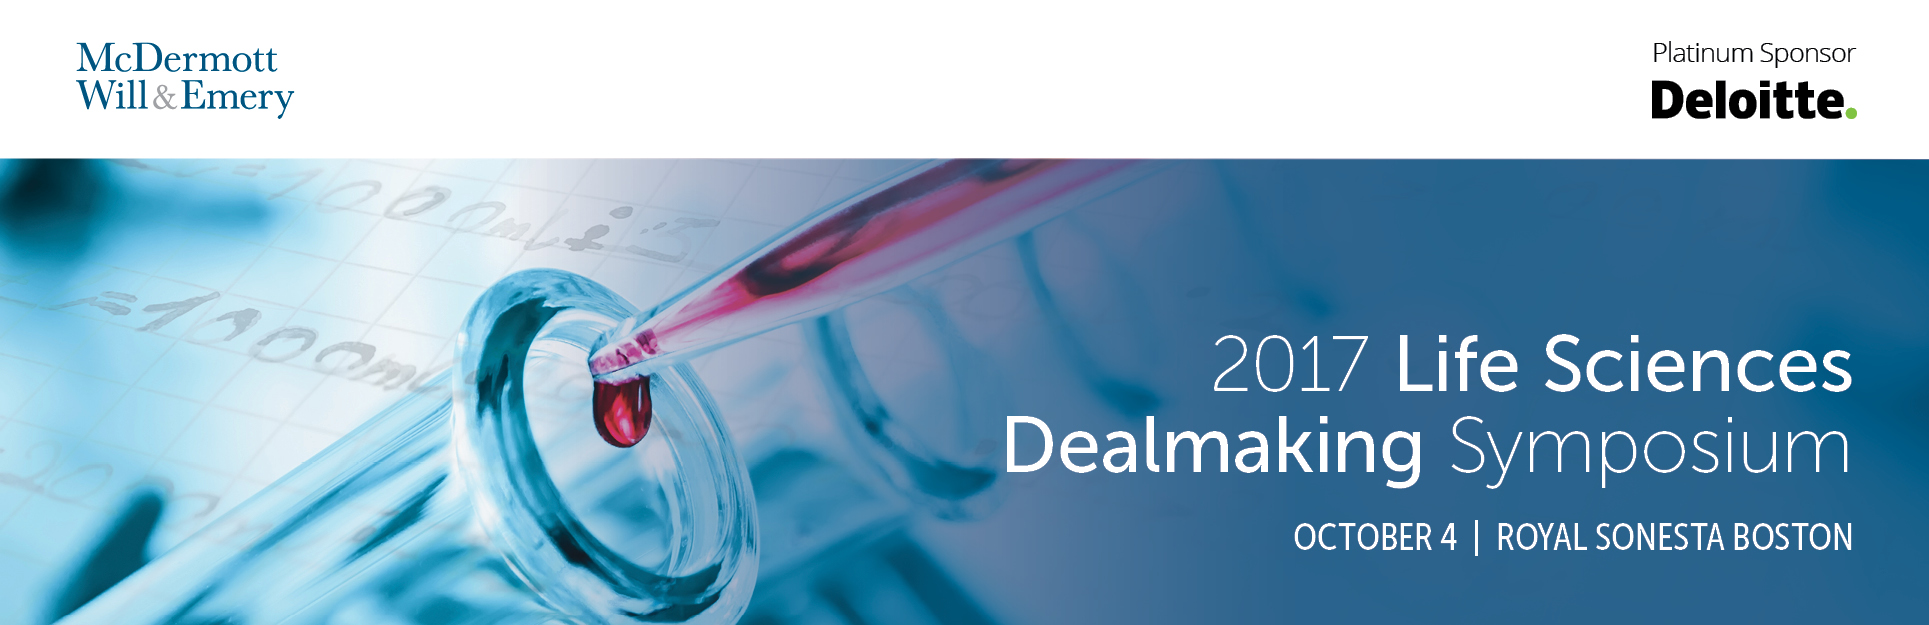 McDermott's 2017 Life Sciences Dealmaking Symposium